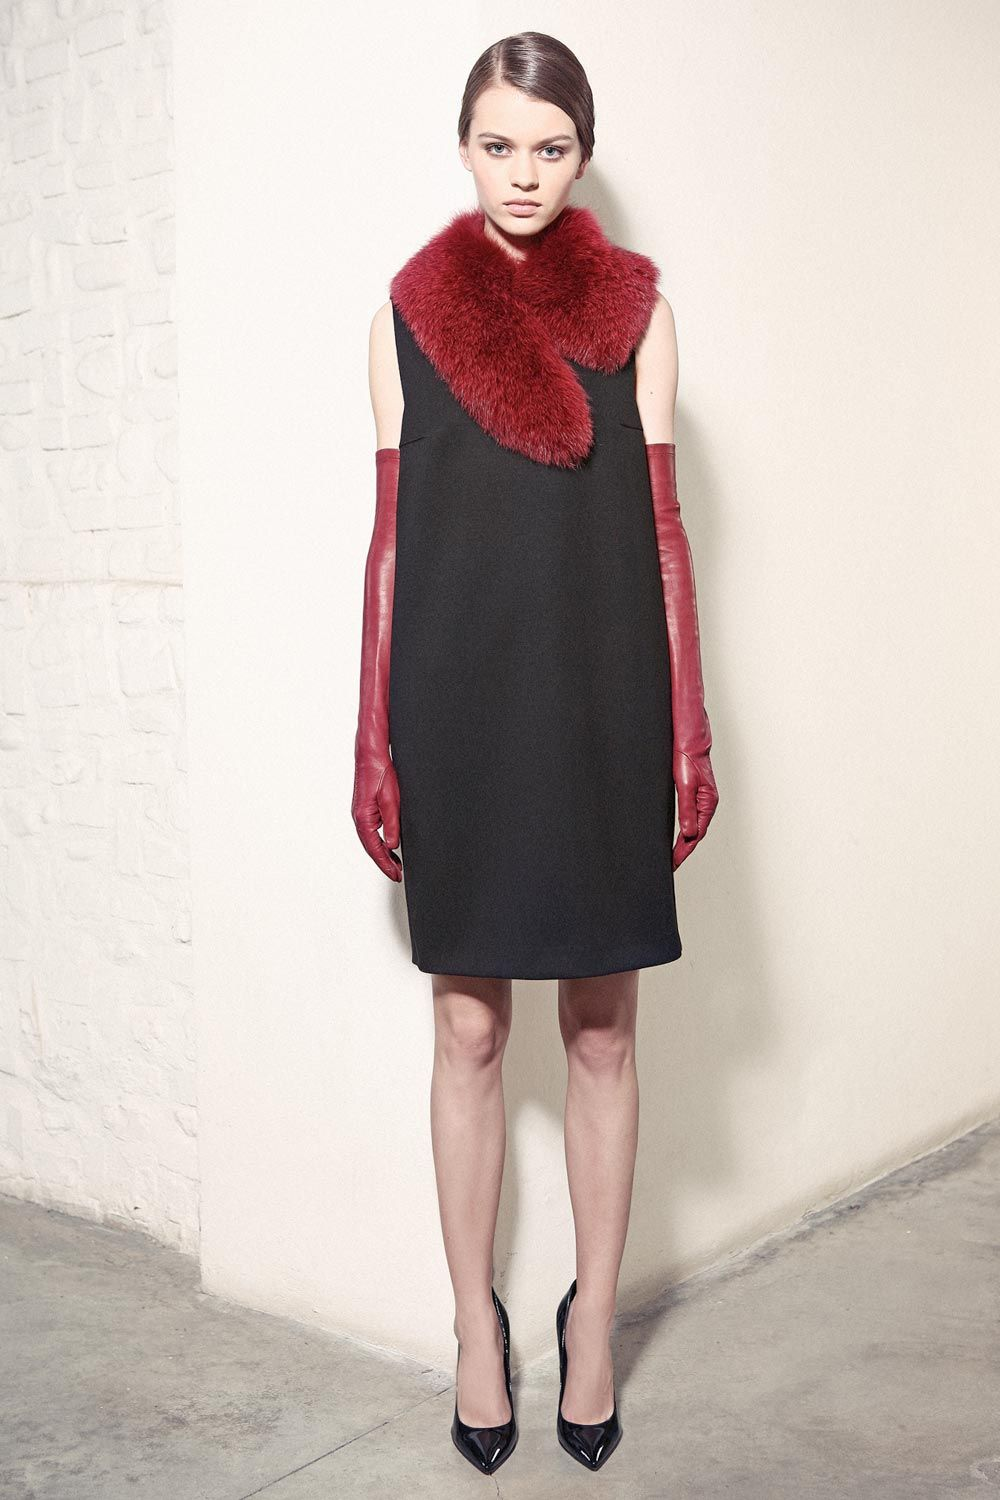 Prefall Fall Winter 2013-2014 | JONOFUI